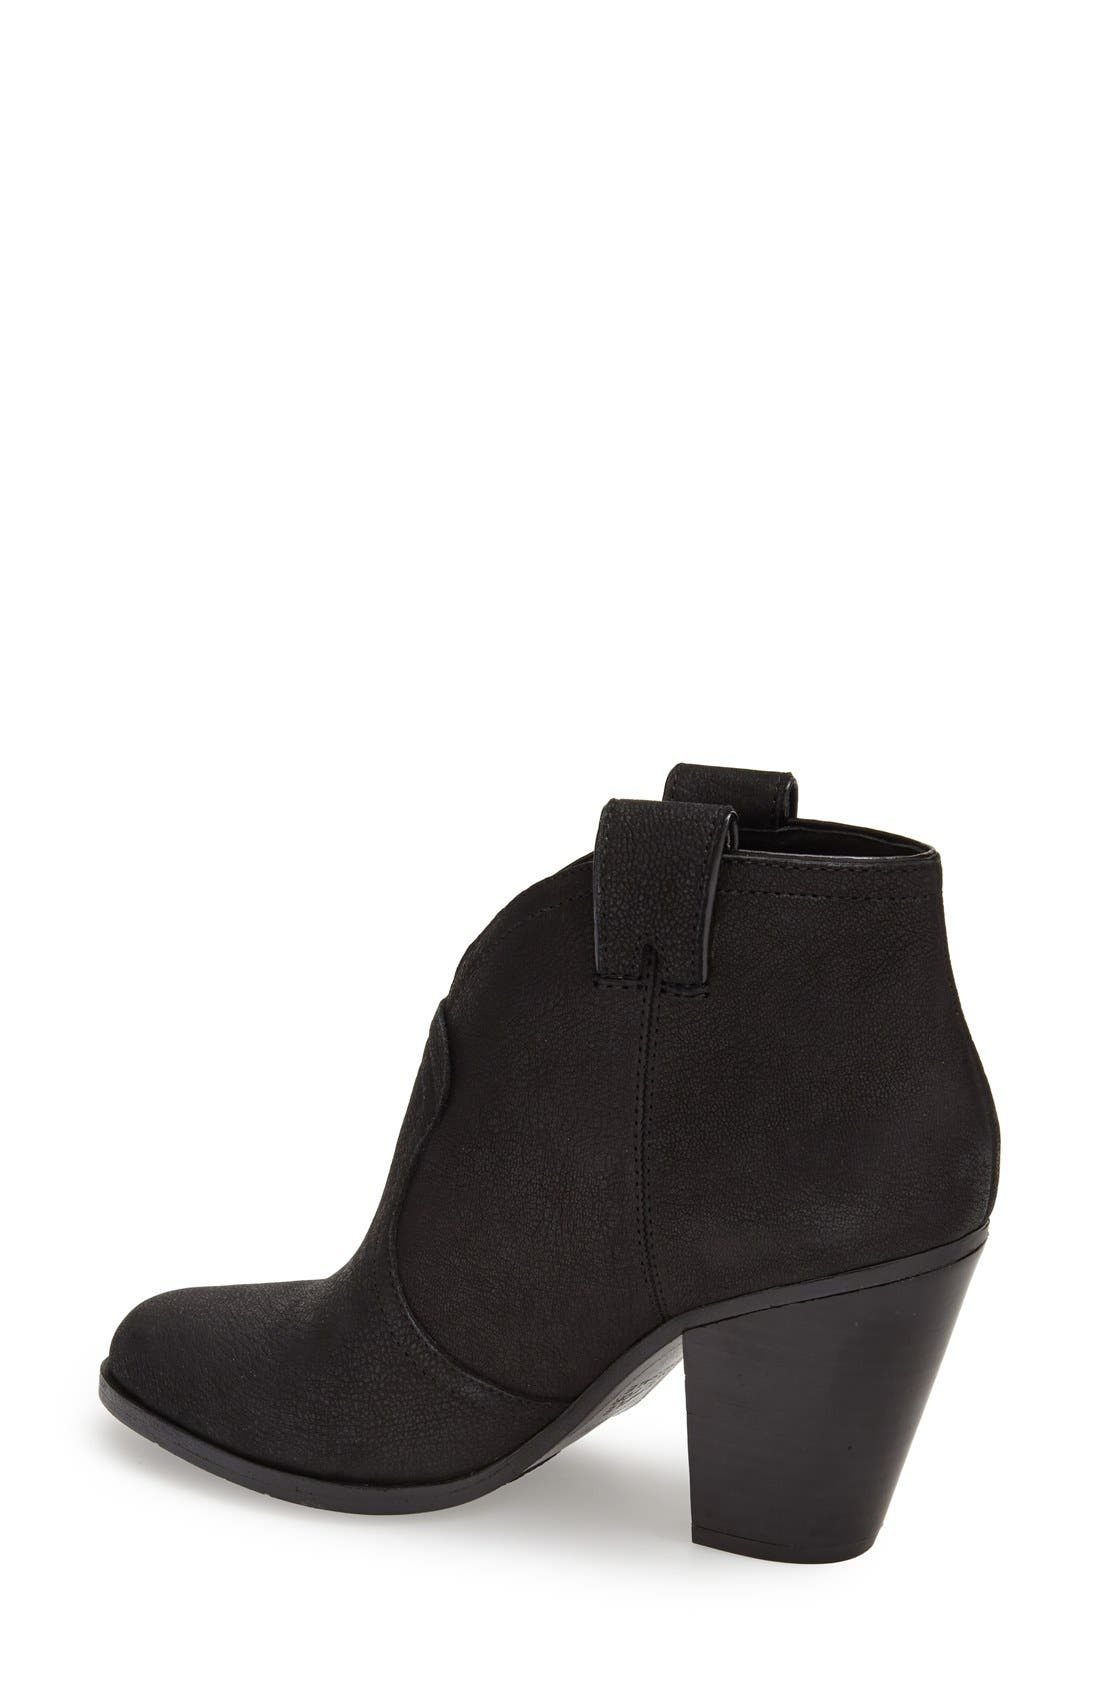 'Hillsy' Almond Toe Ankle Bootie,                             Alternate thumbnail 3, color,                             001